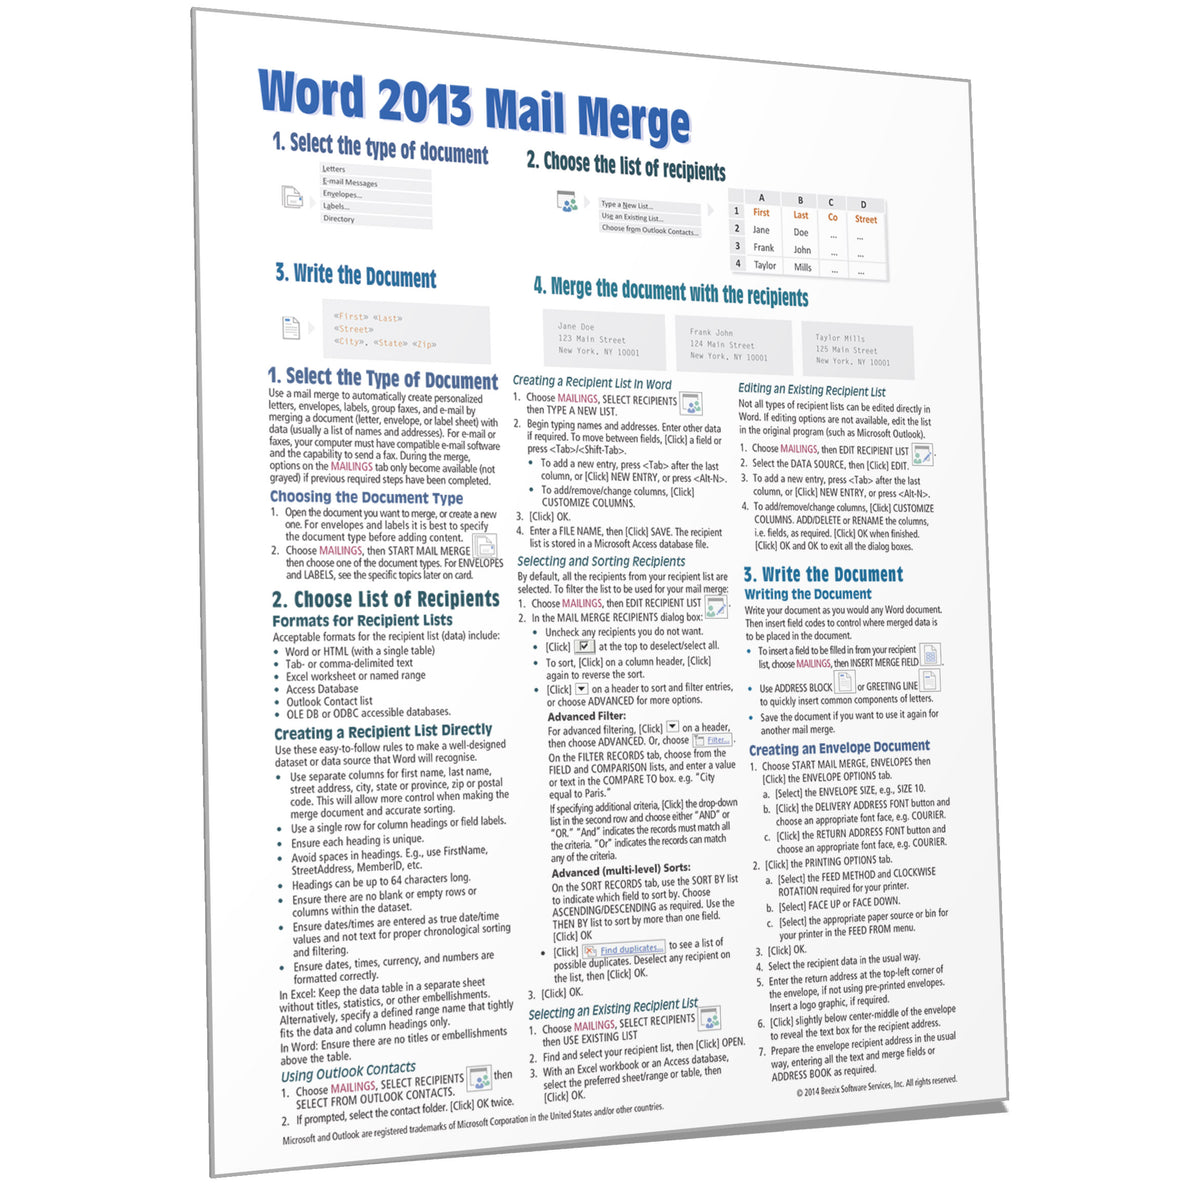 Microsoft Word 2013 Mail Merge Guide, Cheat Sheet Card